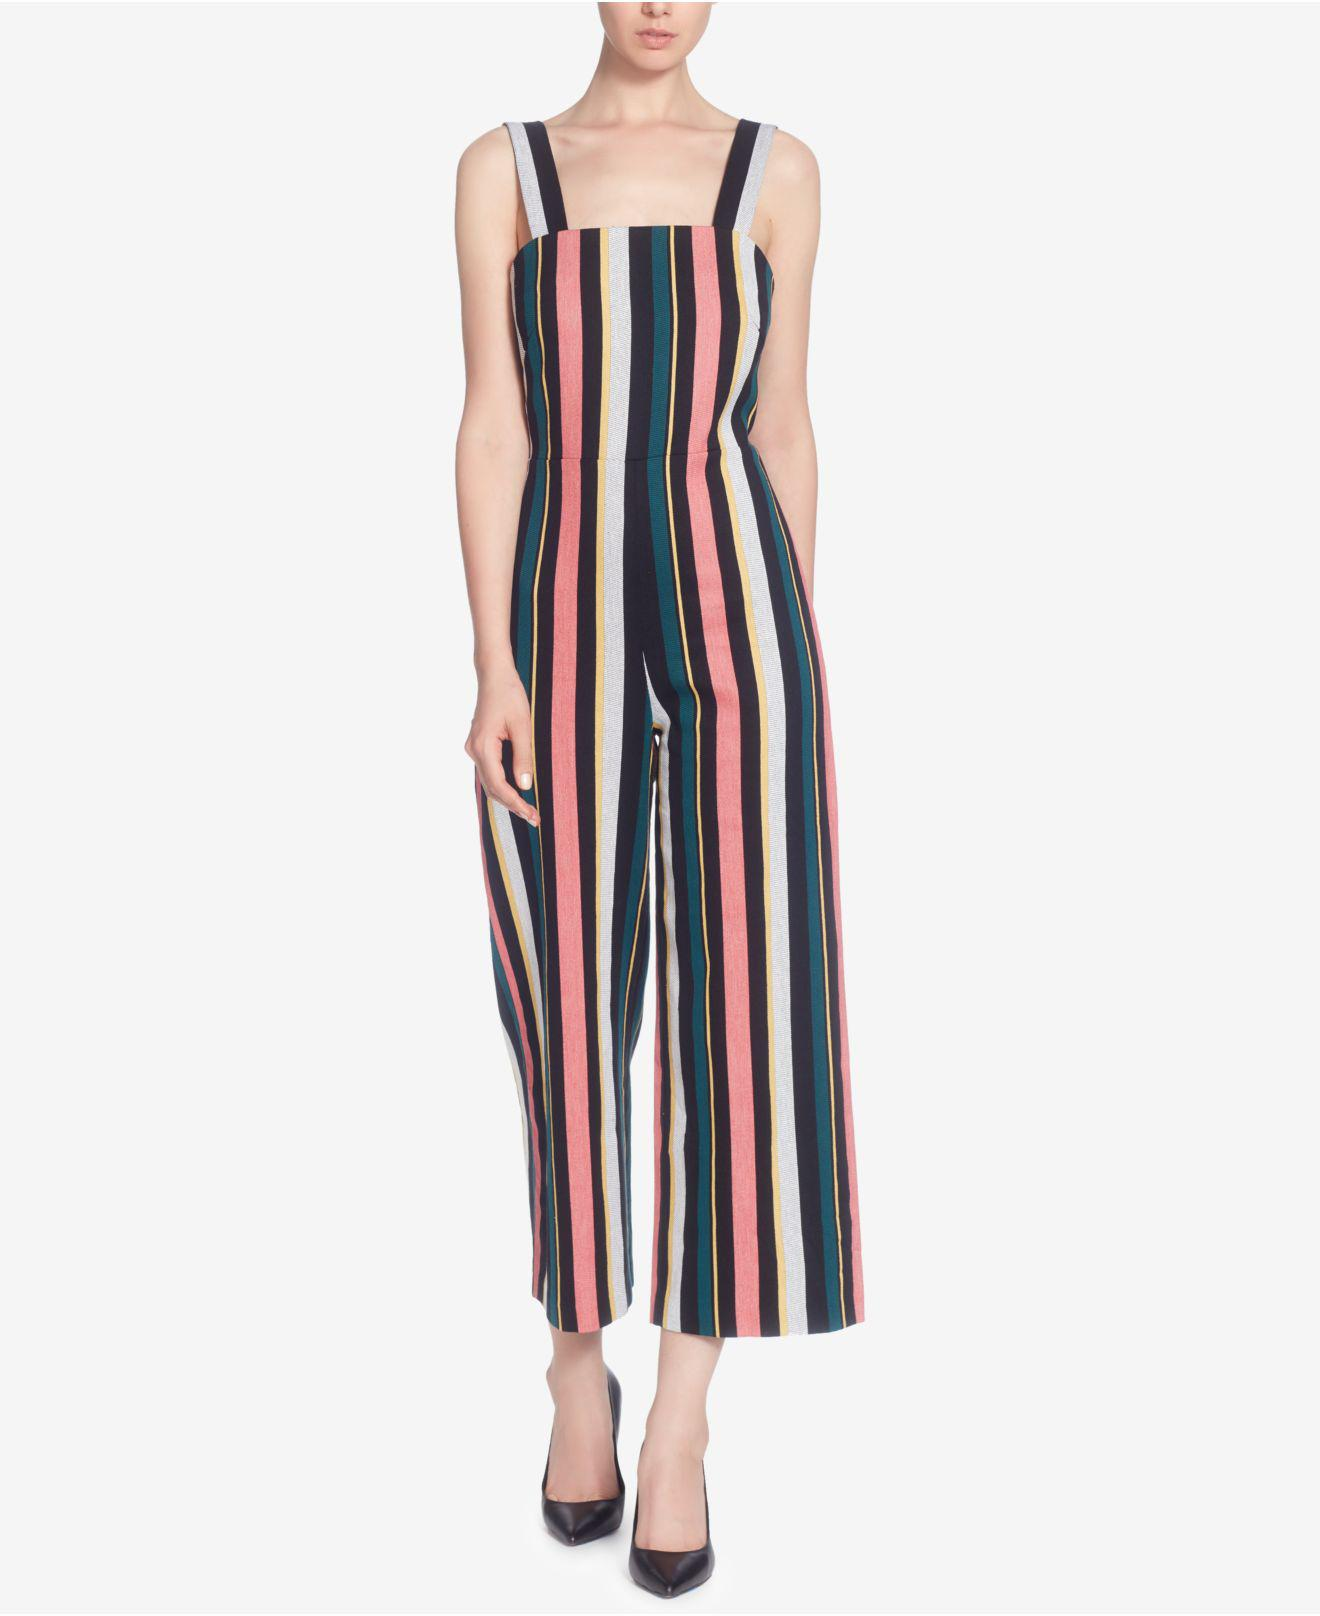 685f4af34a6 Lyst - Catherine Malandrino Striped Cotton Jumpsuit in Blue